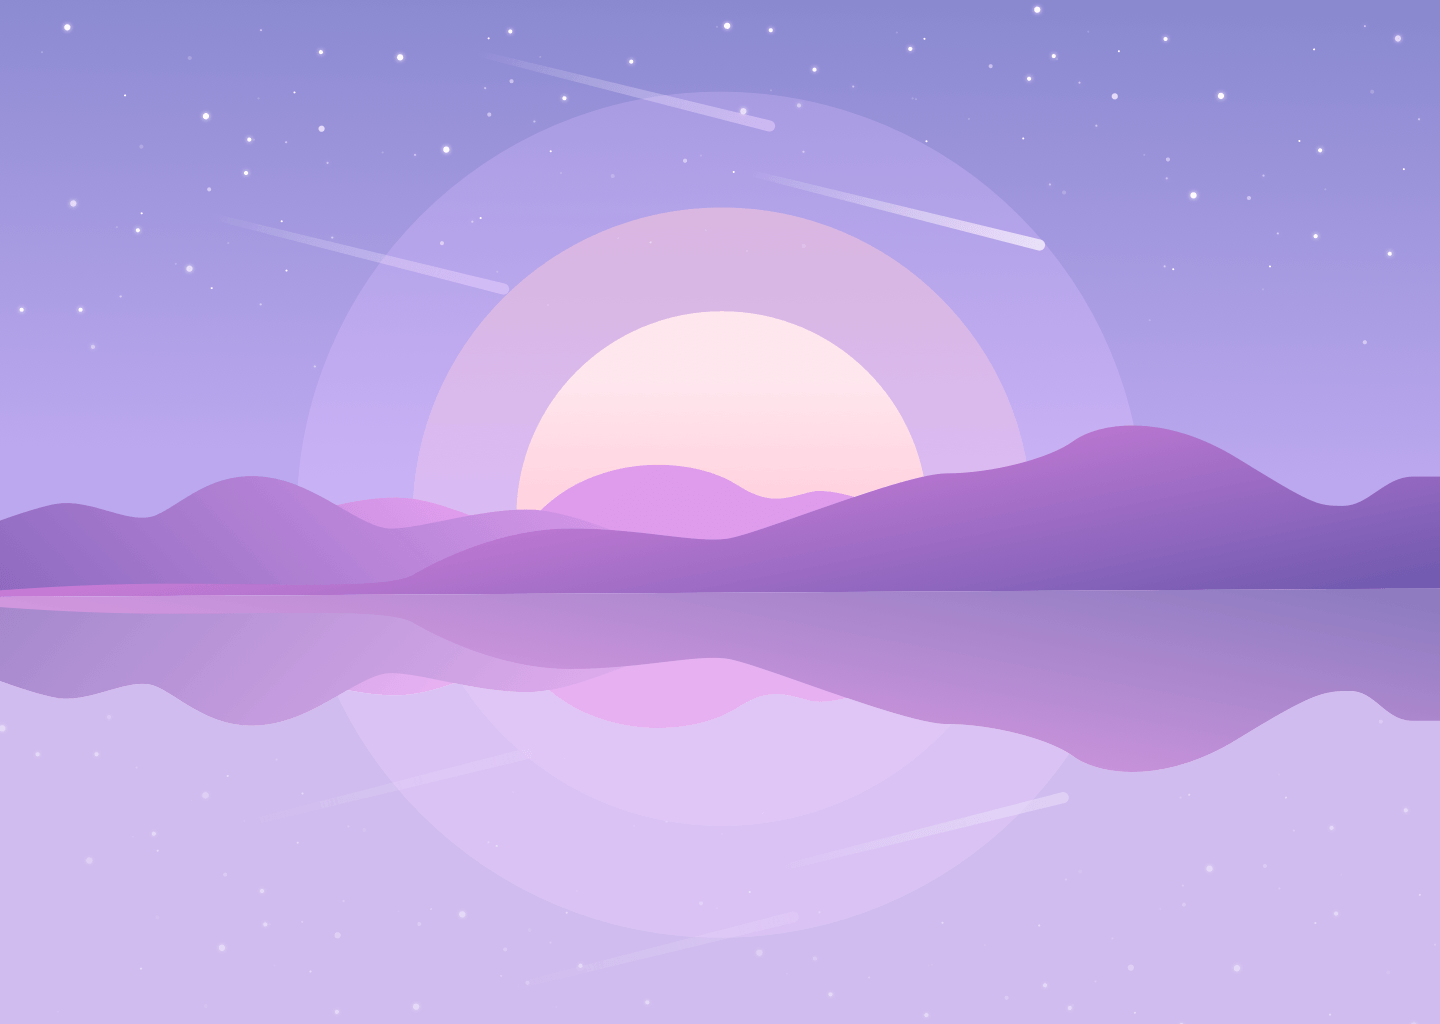 Purple Aesthetics Computer Wallpapers